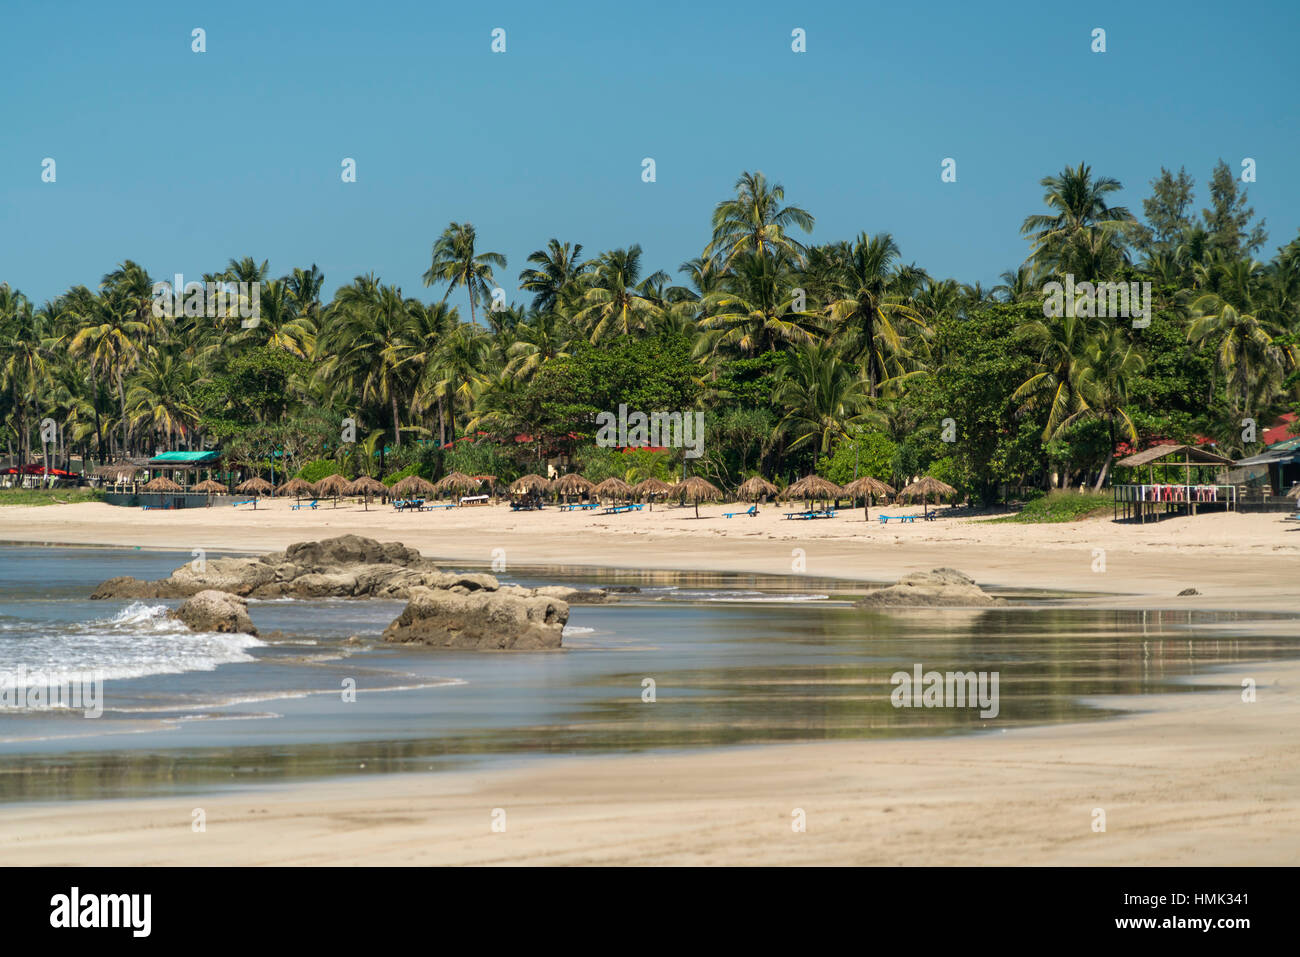 Sandy beach with palm trees, Ngwe Saung, Myanmar - Stock Image